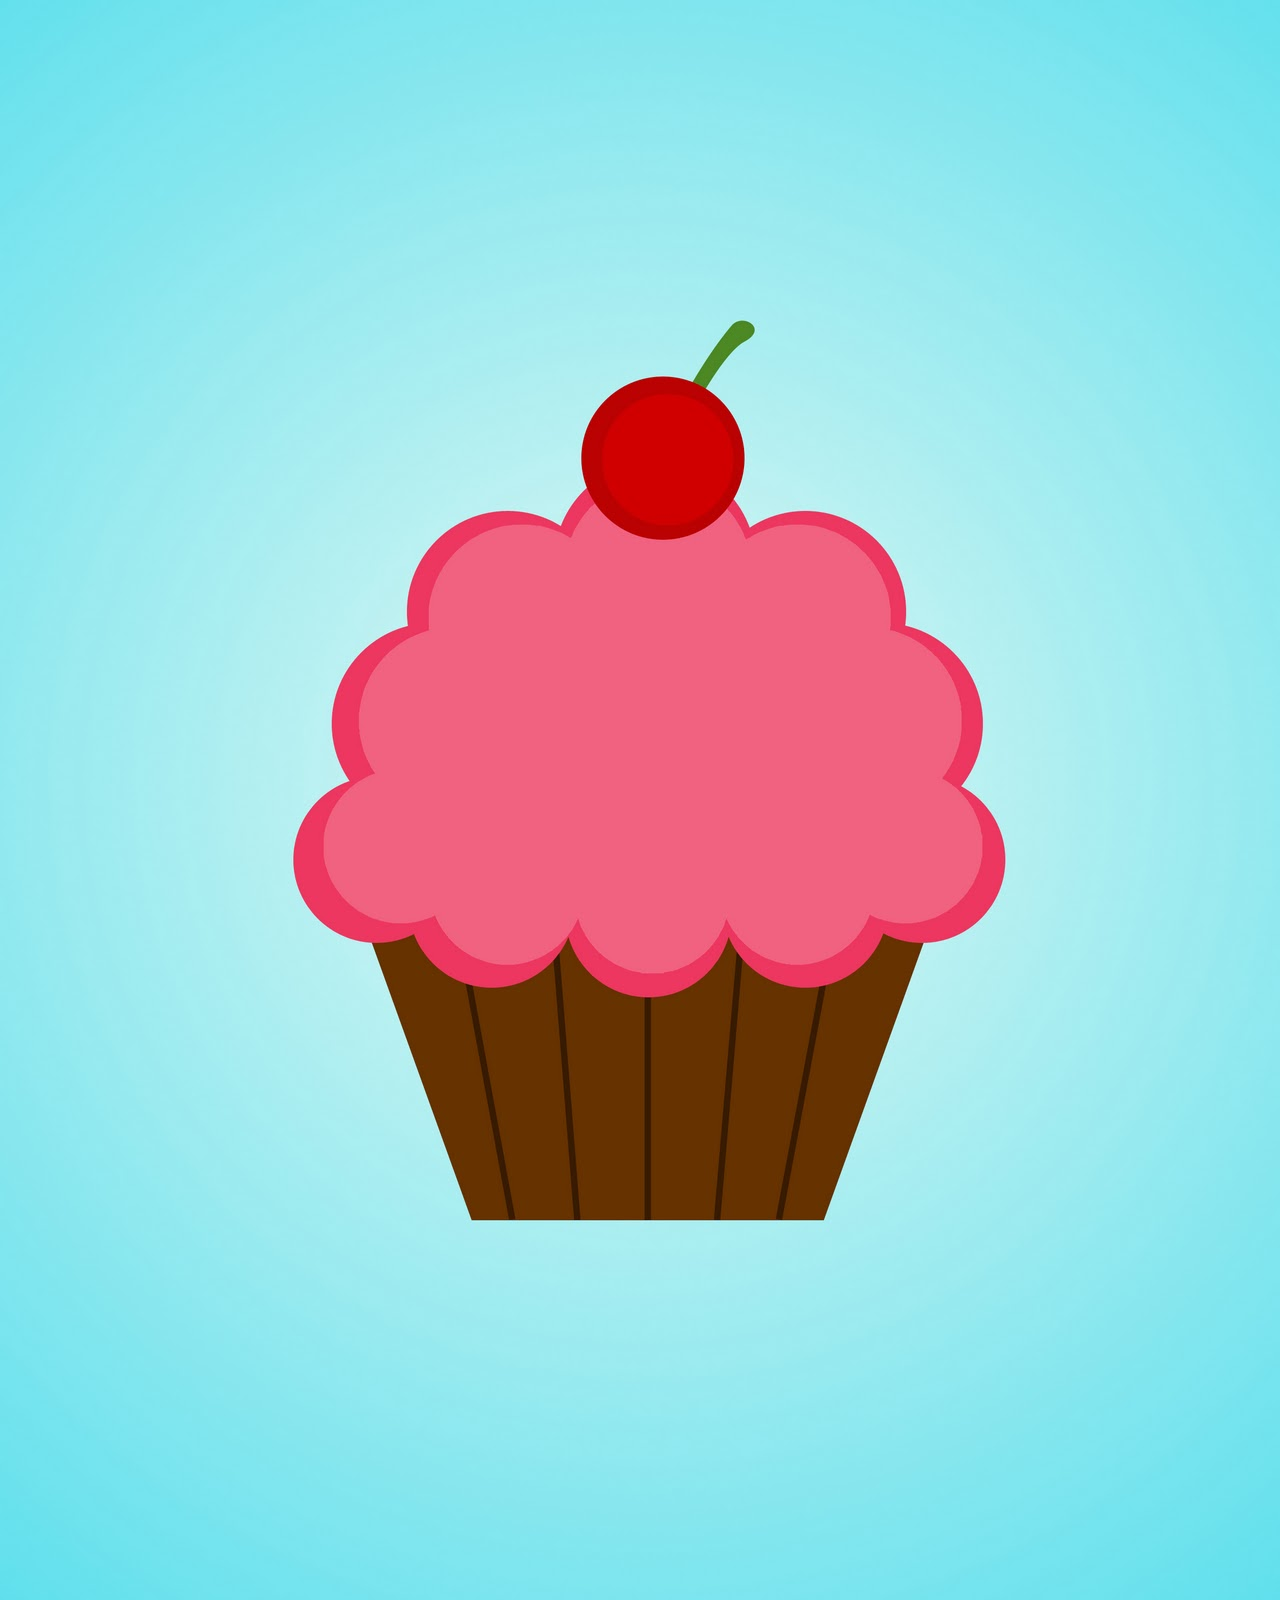 Free Printable Images Of Cupcakes : WhimsiKel: Printables (Including My Cupcake Printable!)